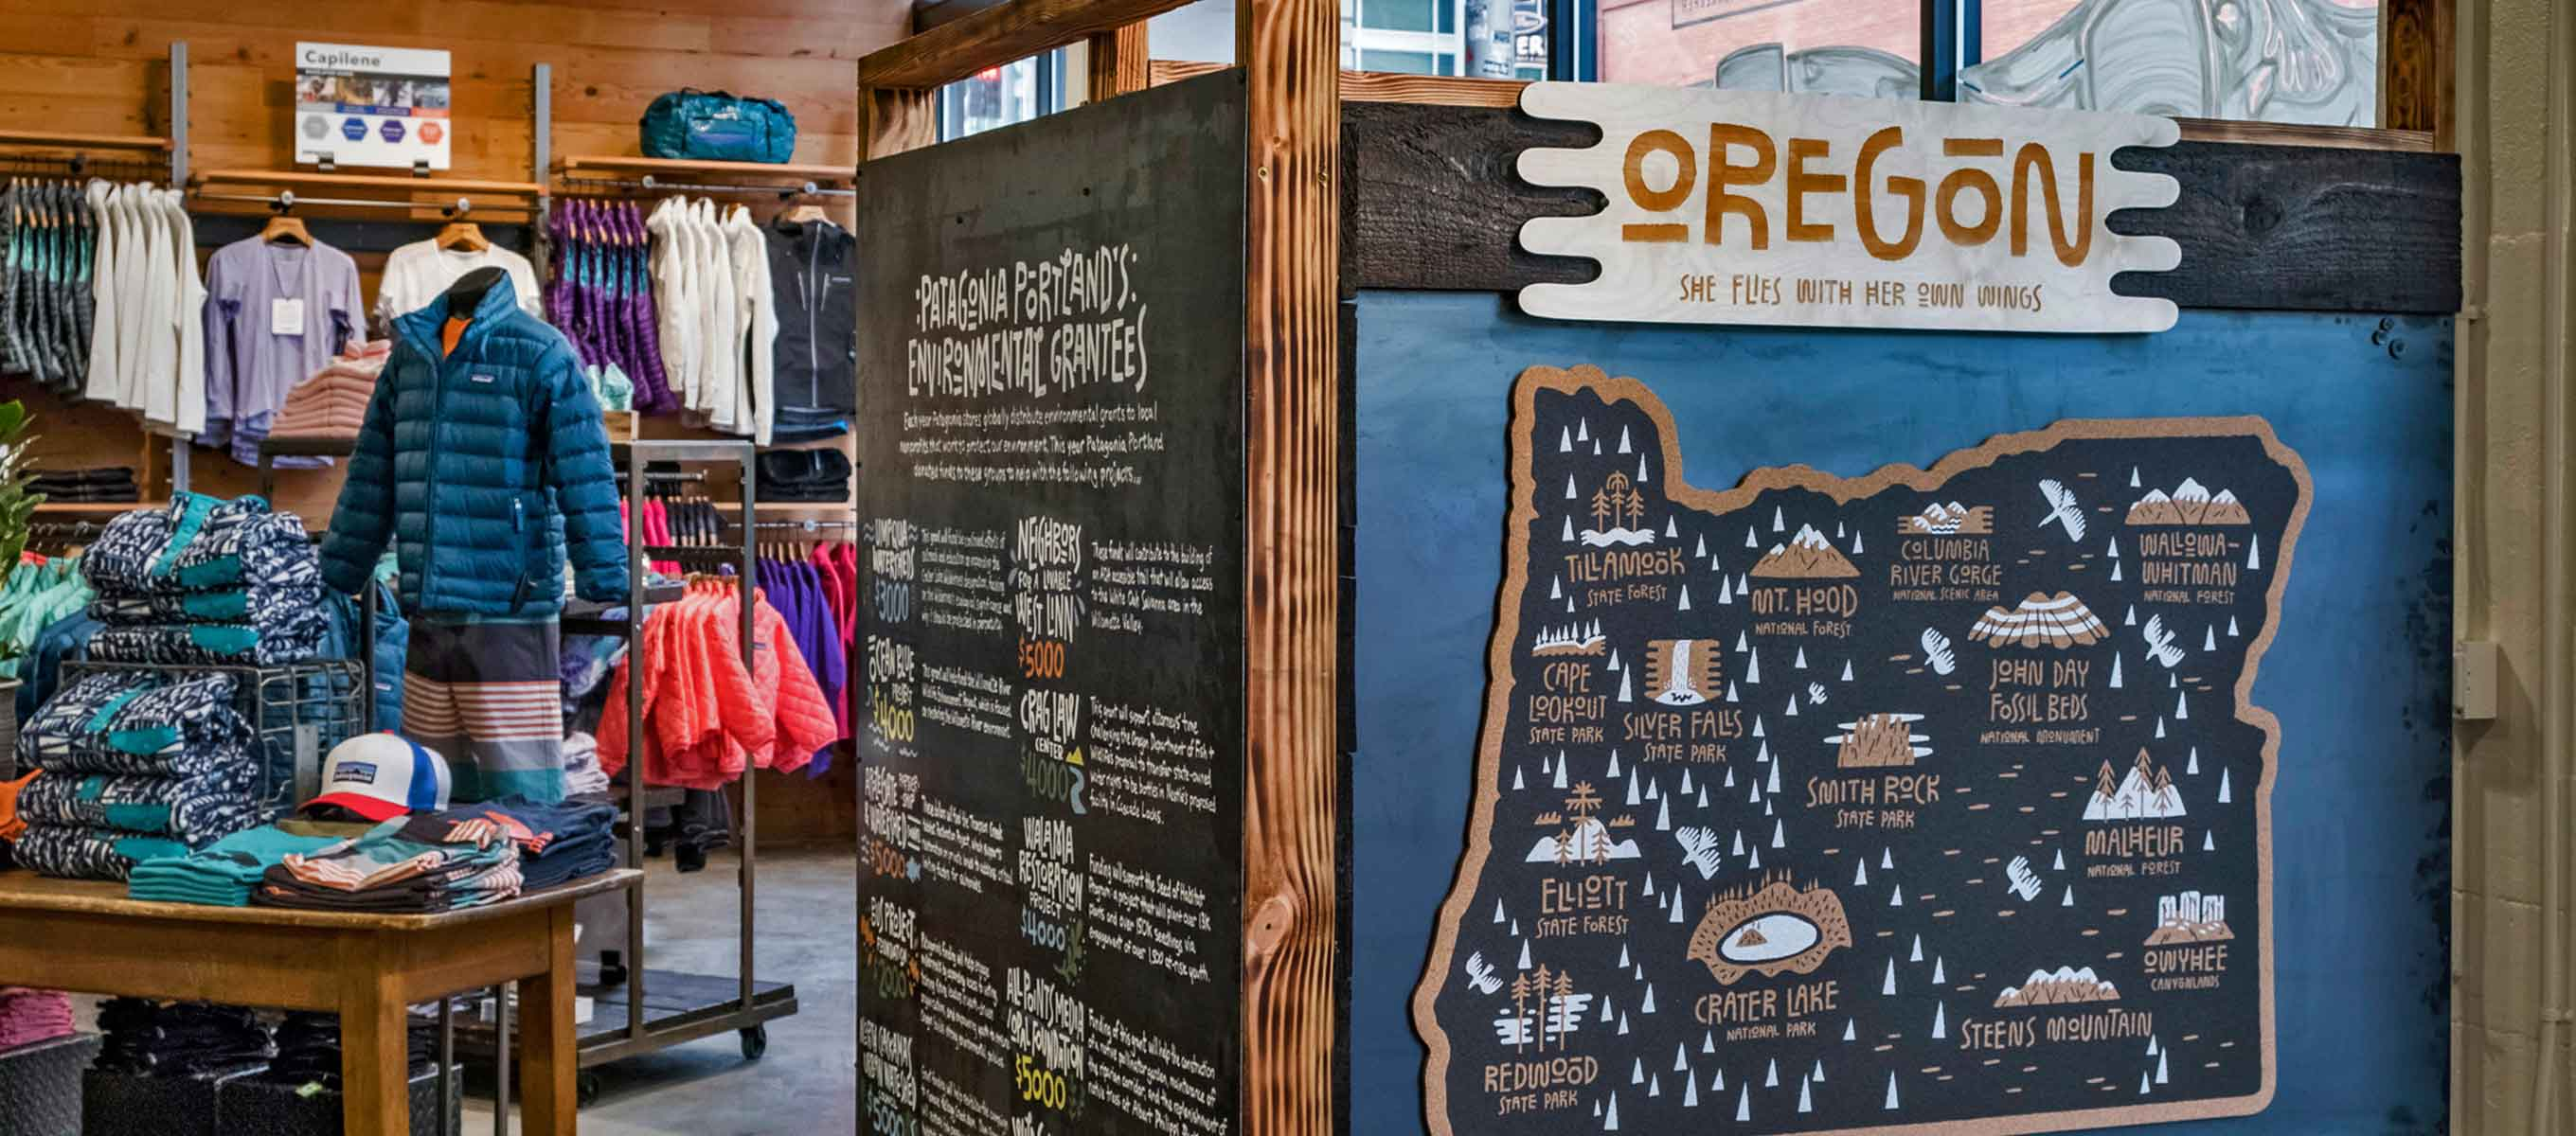 Patagonia Portland - Outdoor Clothing Store, Portland, OR